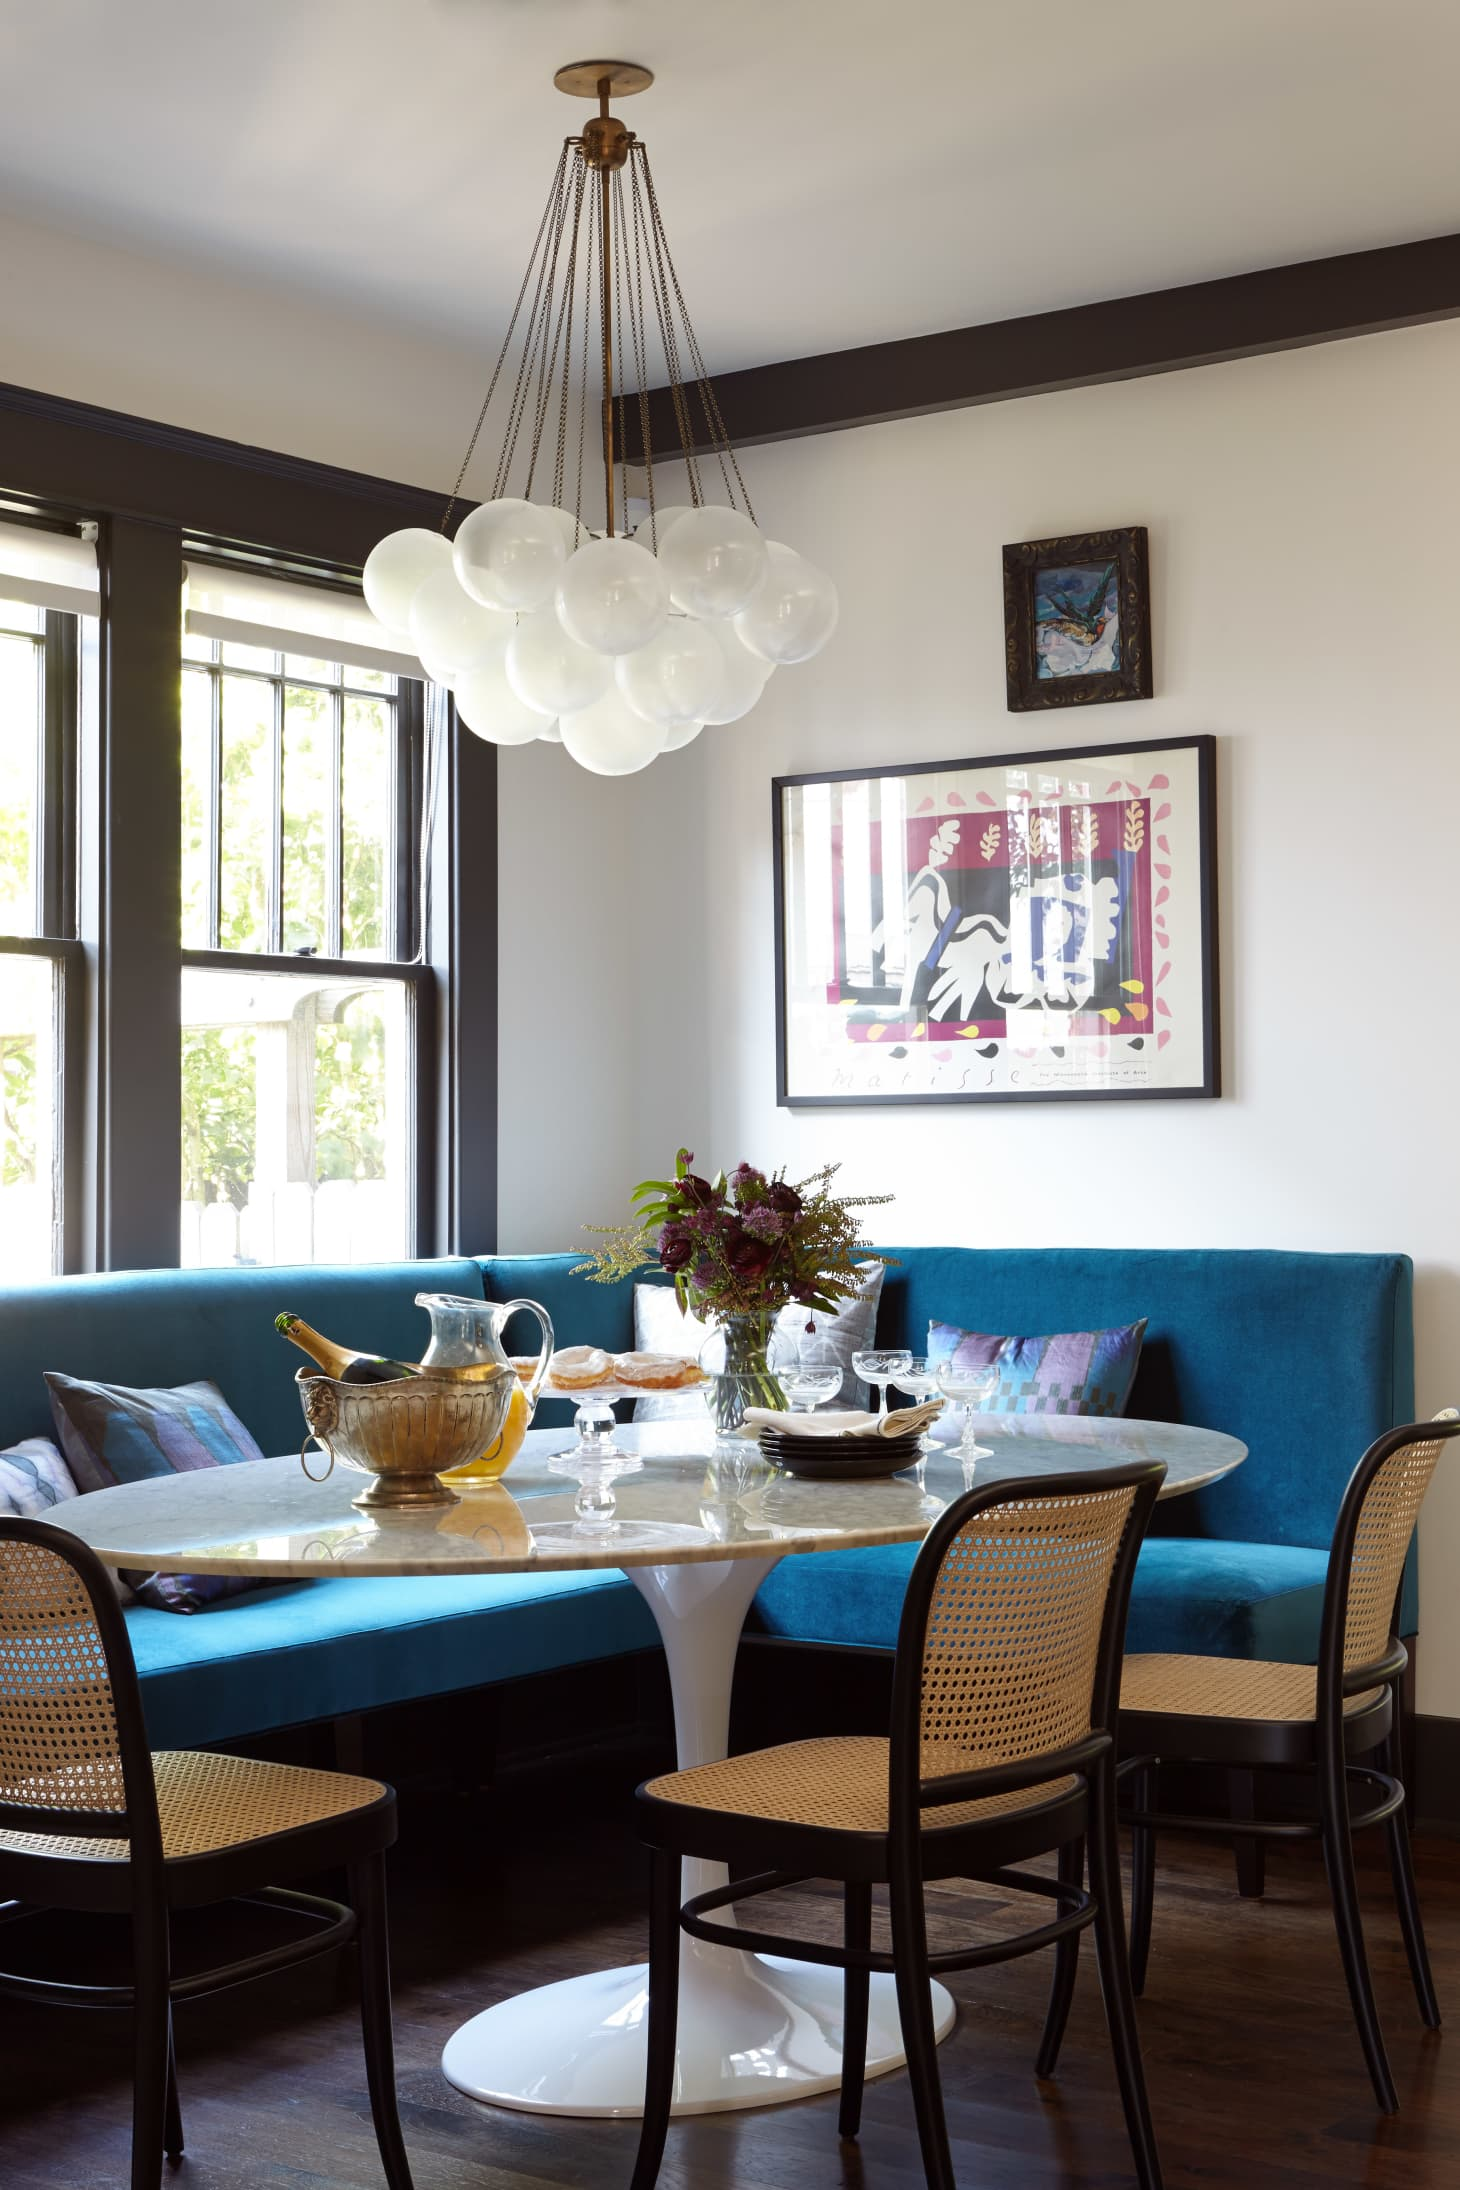 Dining Room Ideas: Try a Banquette In Place of Chairs For ...